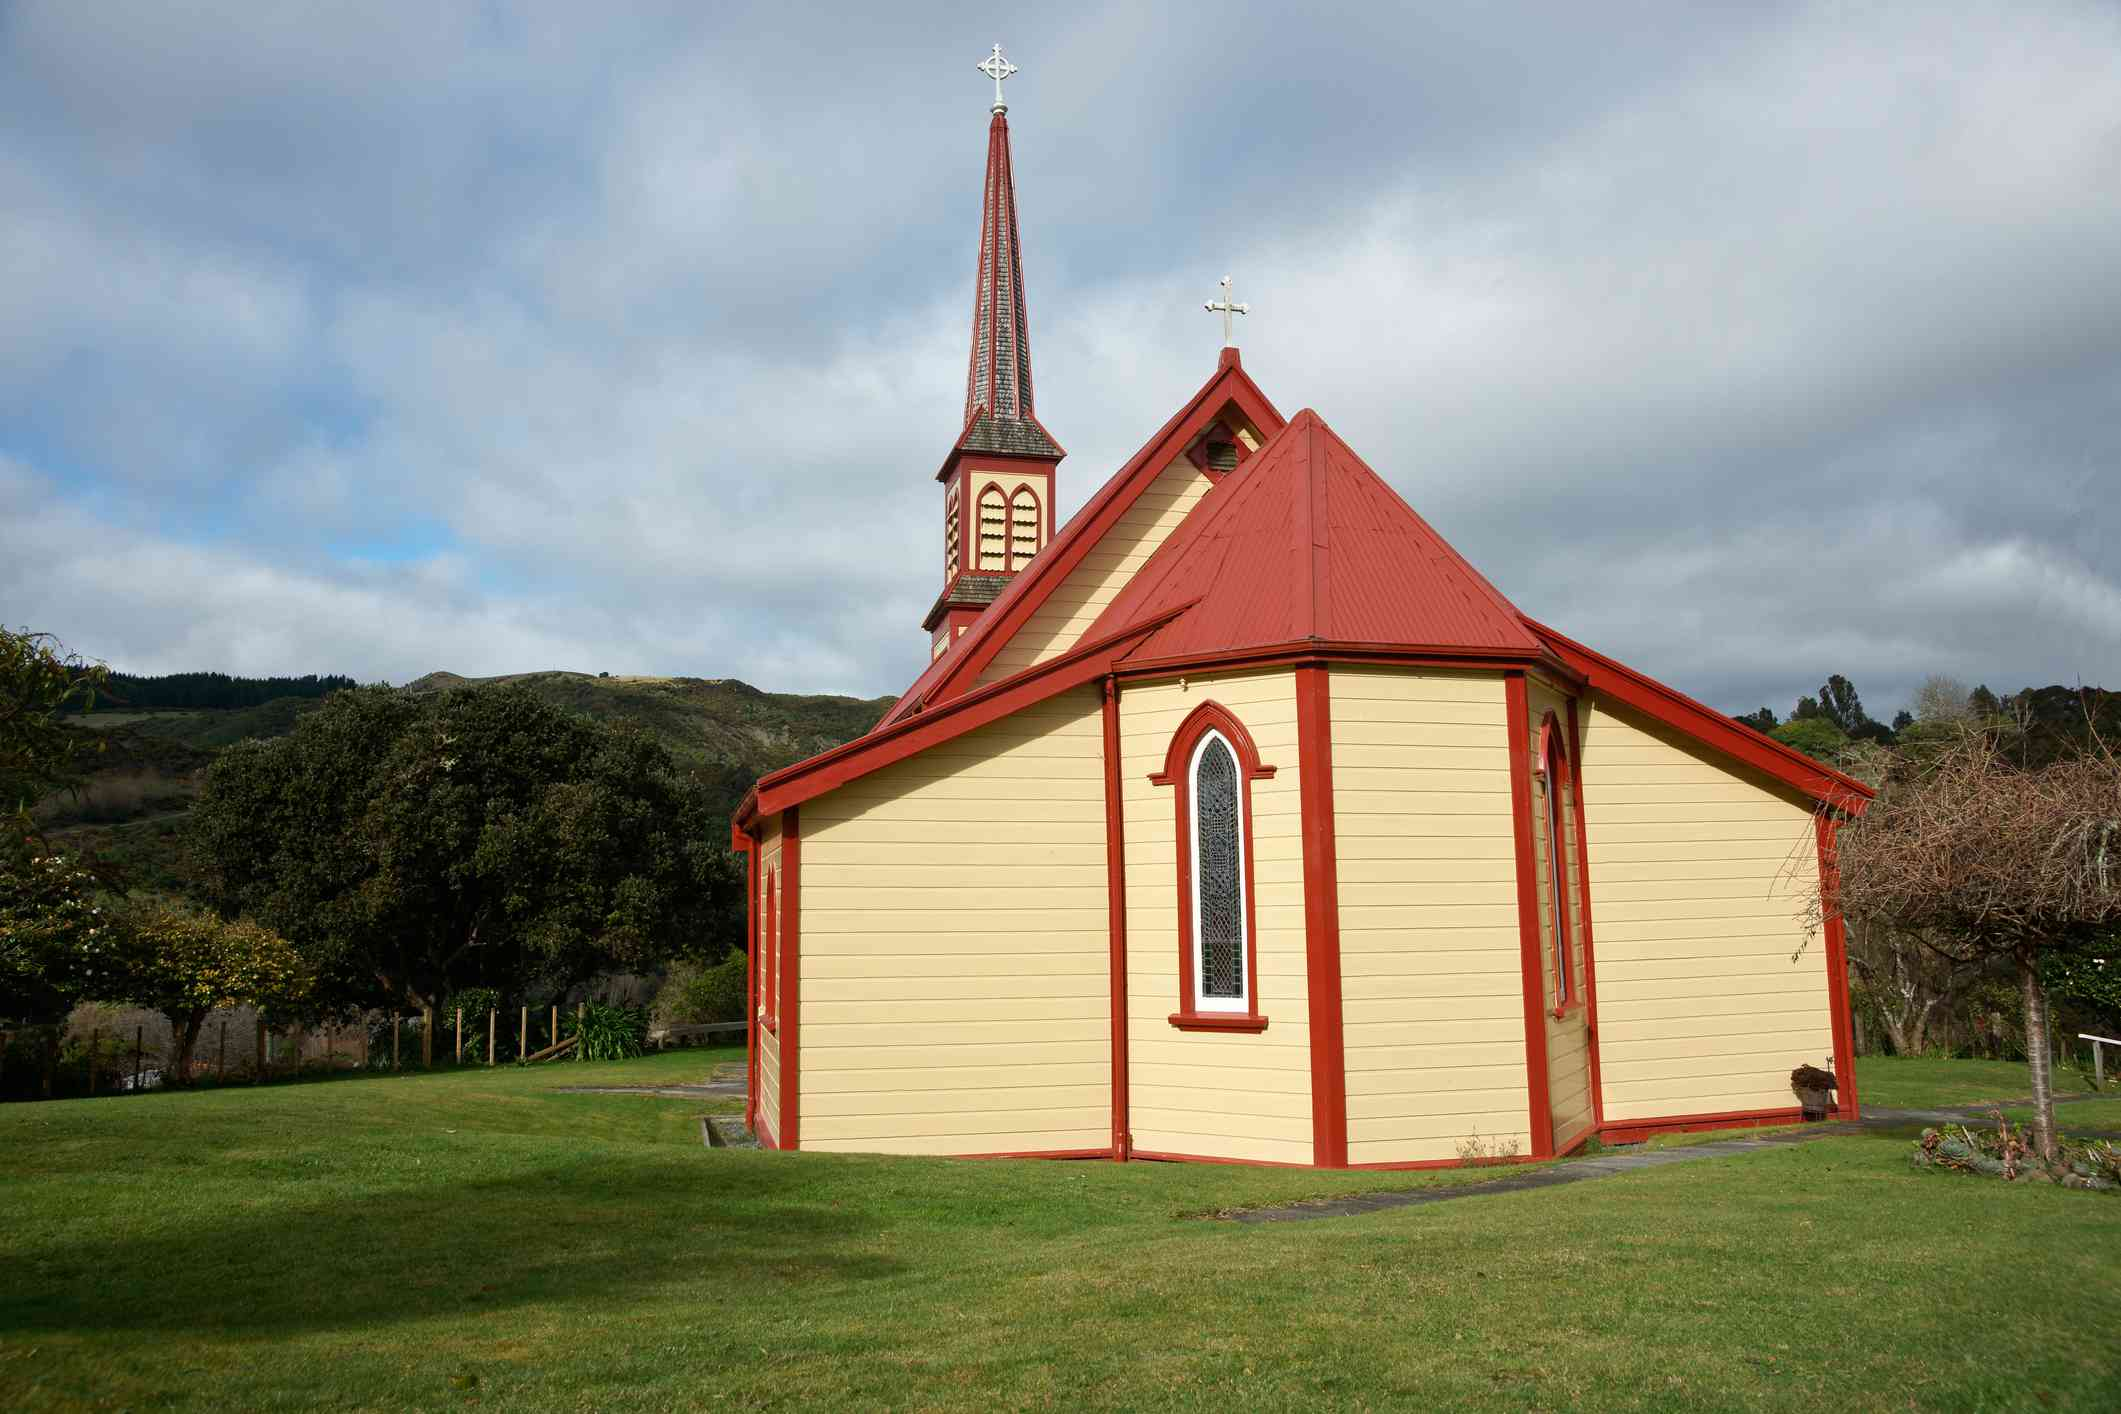 backview of a small tan and red church in a grassy field